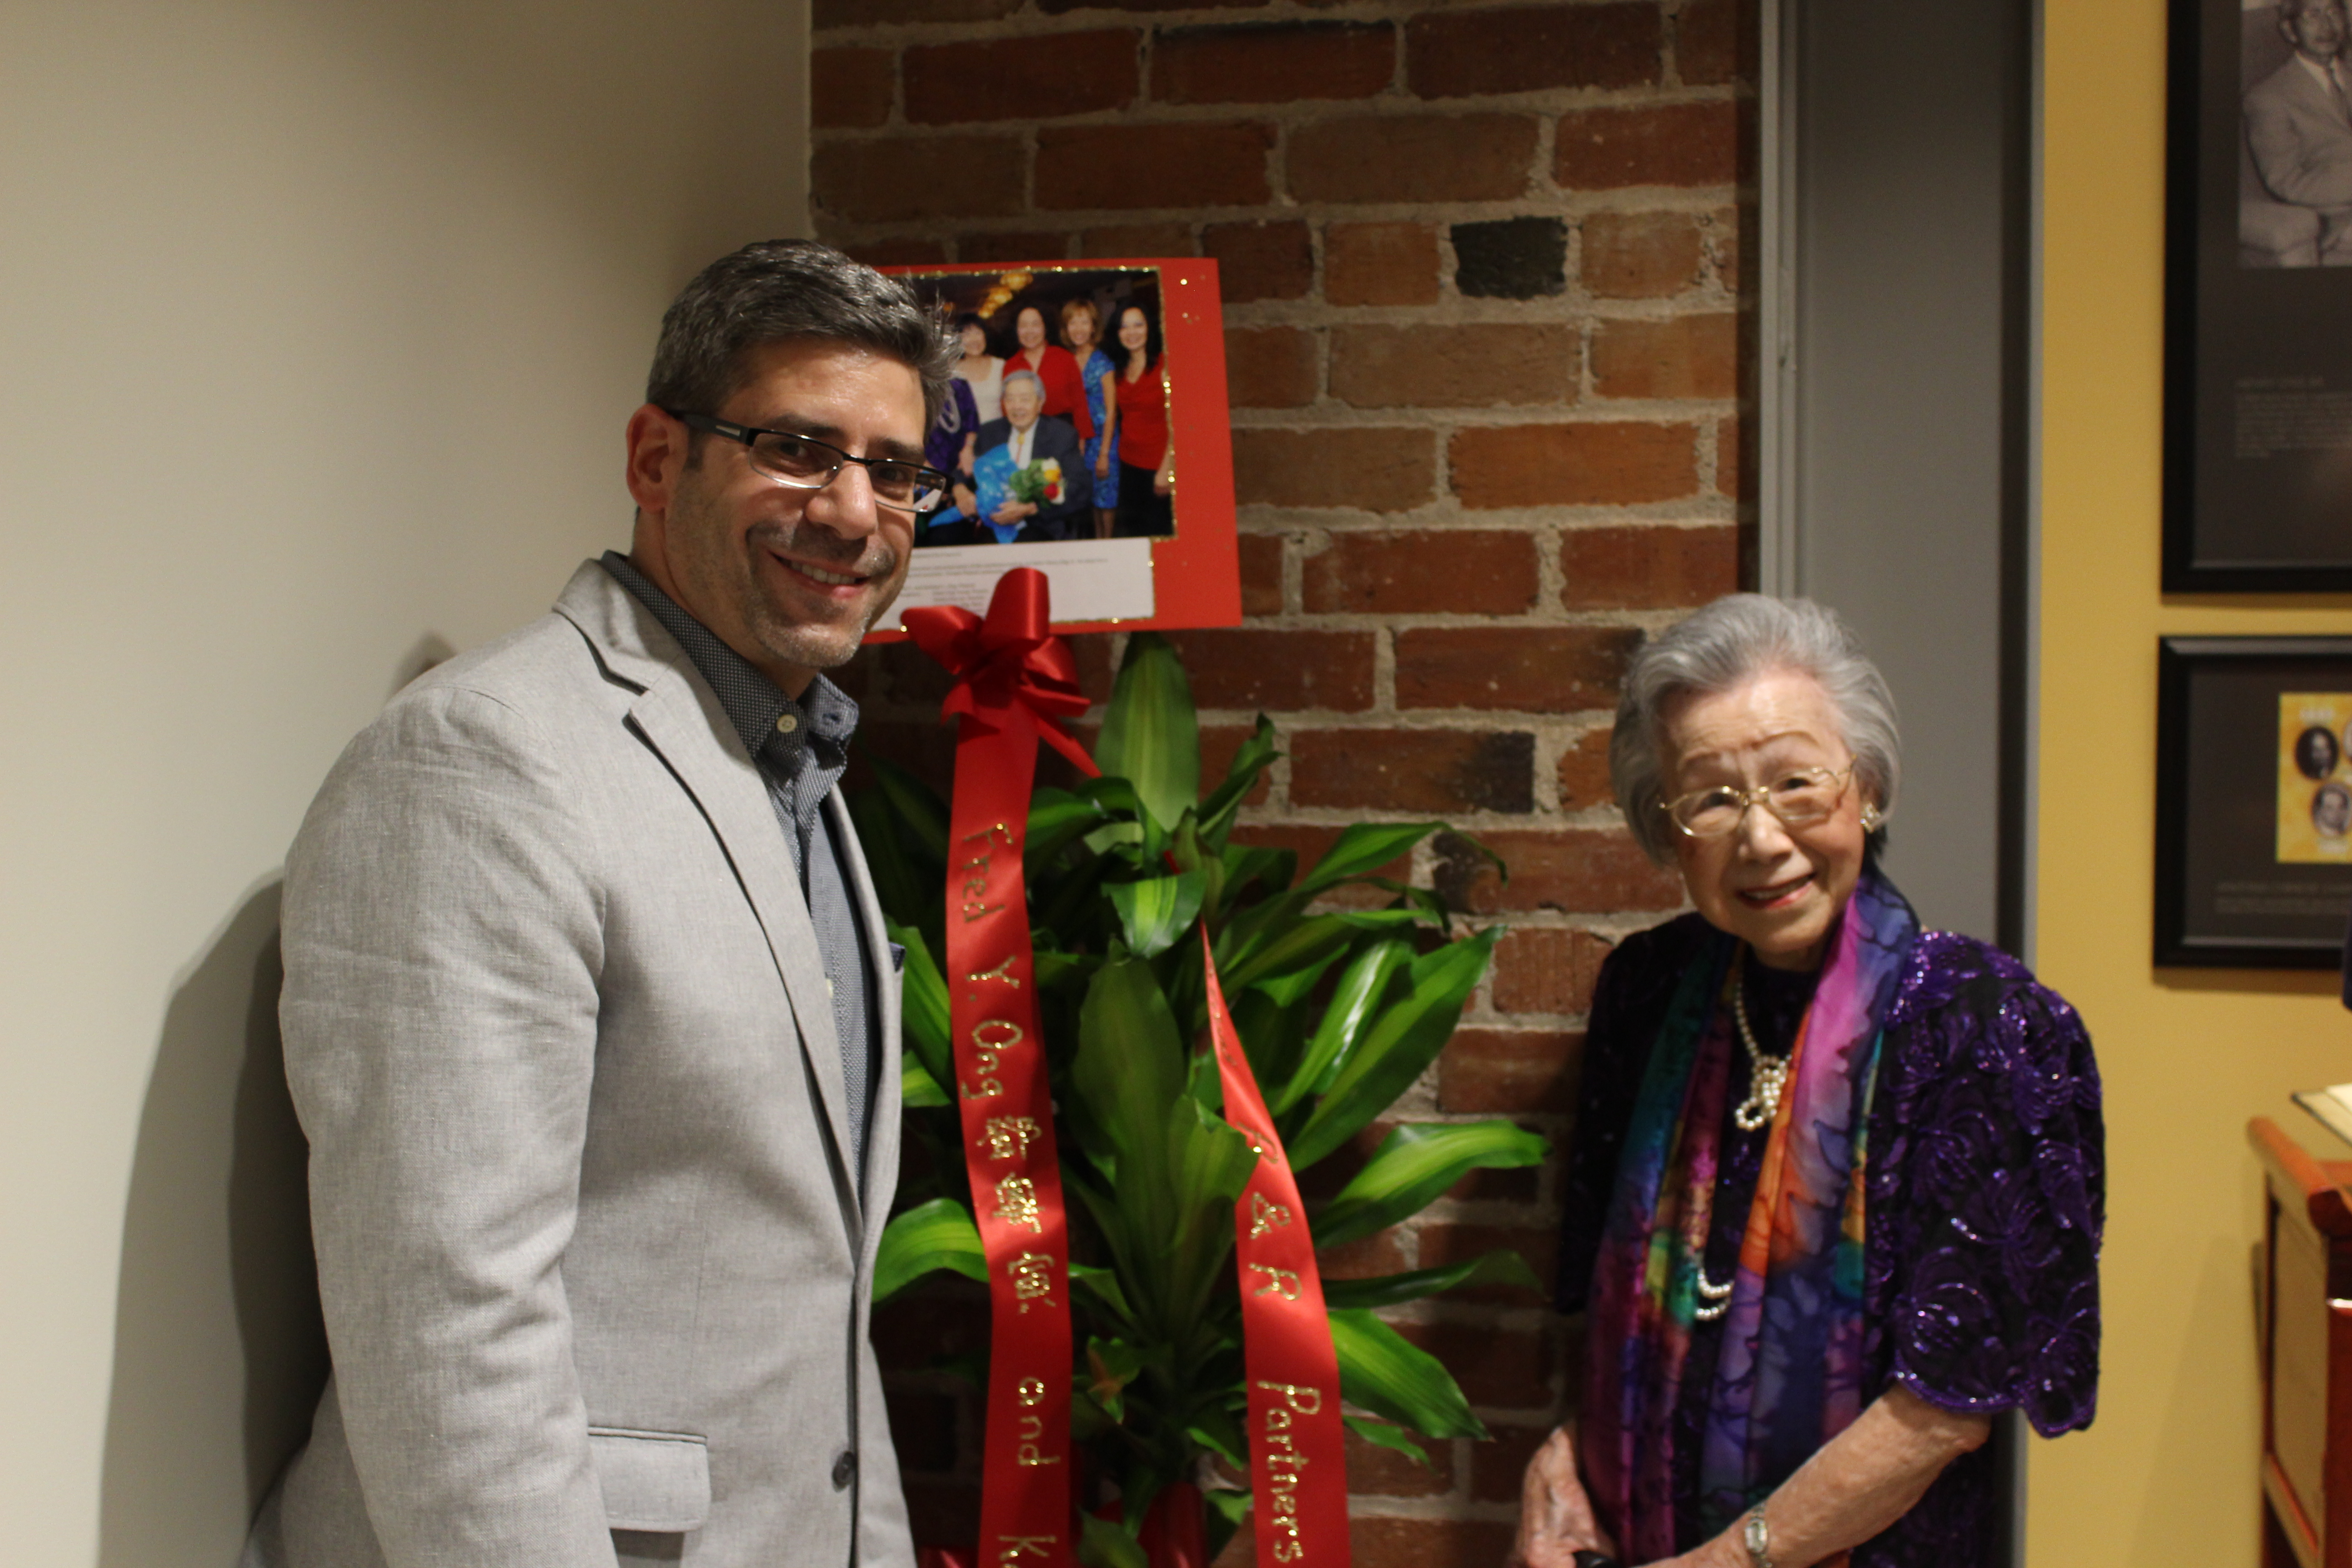 Matt Silverman, R&R VP, and Kathleen Ong, part of the Ong family who originally built the warehouse in 1926.